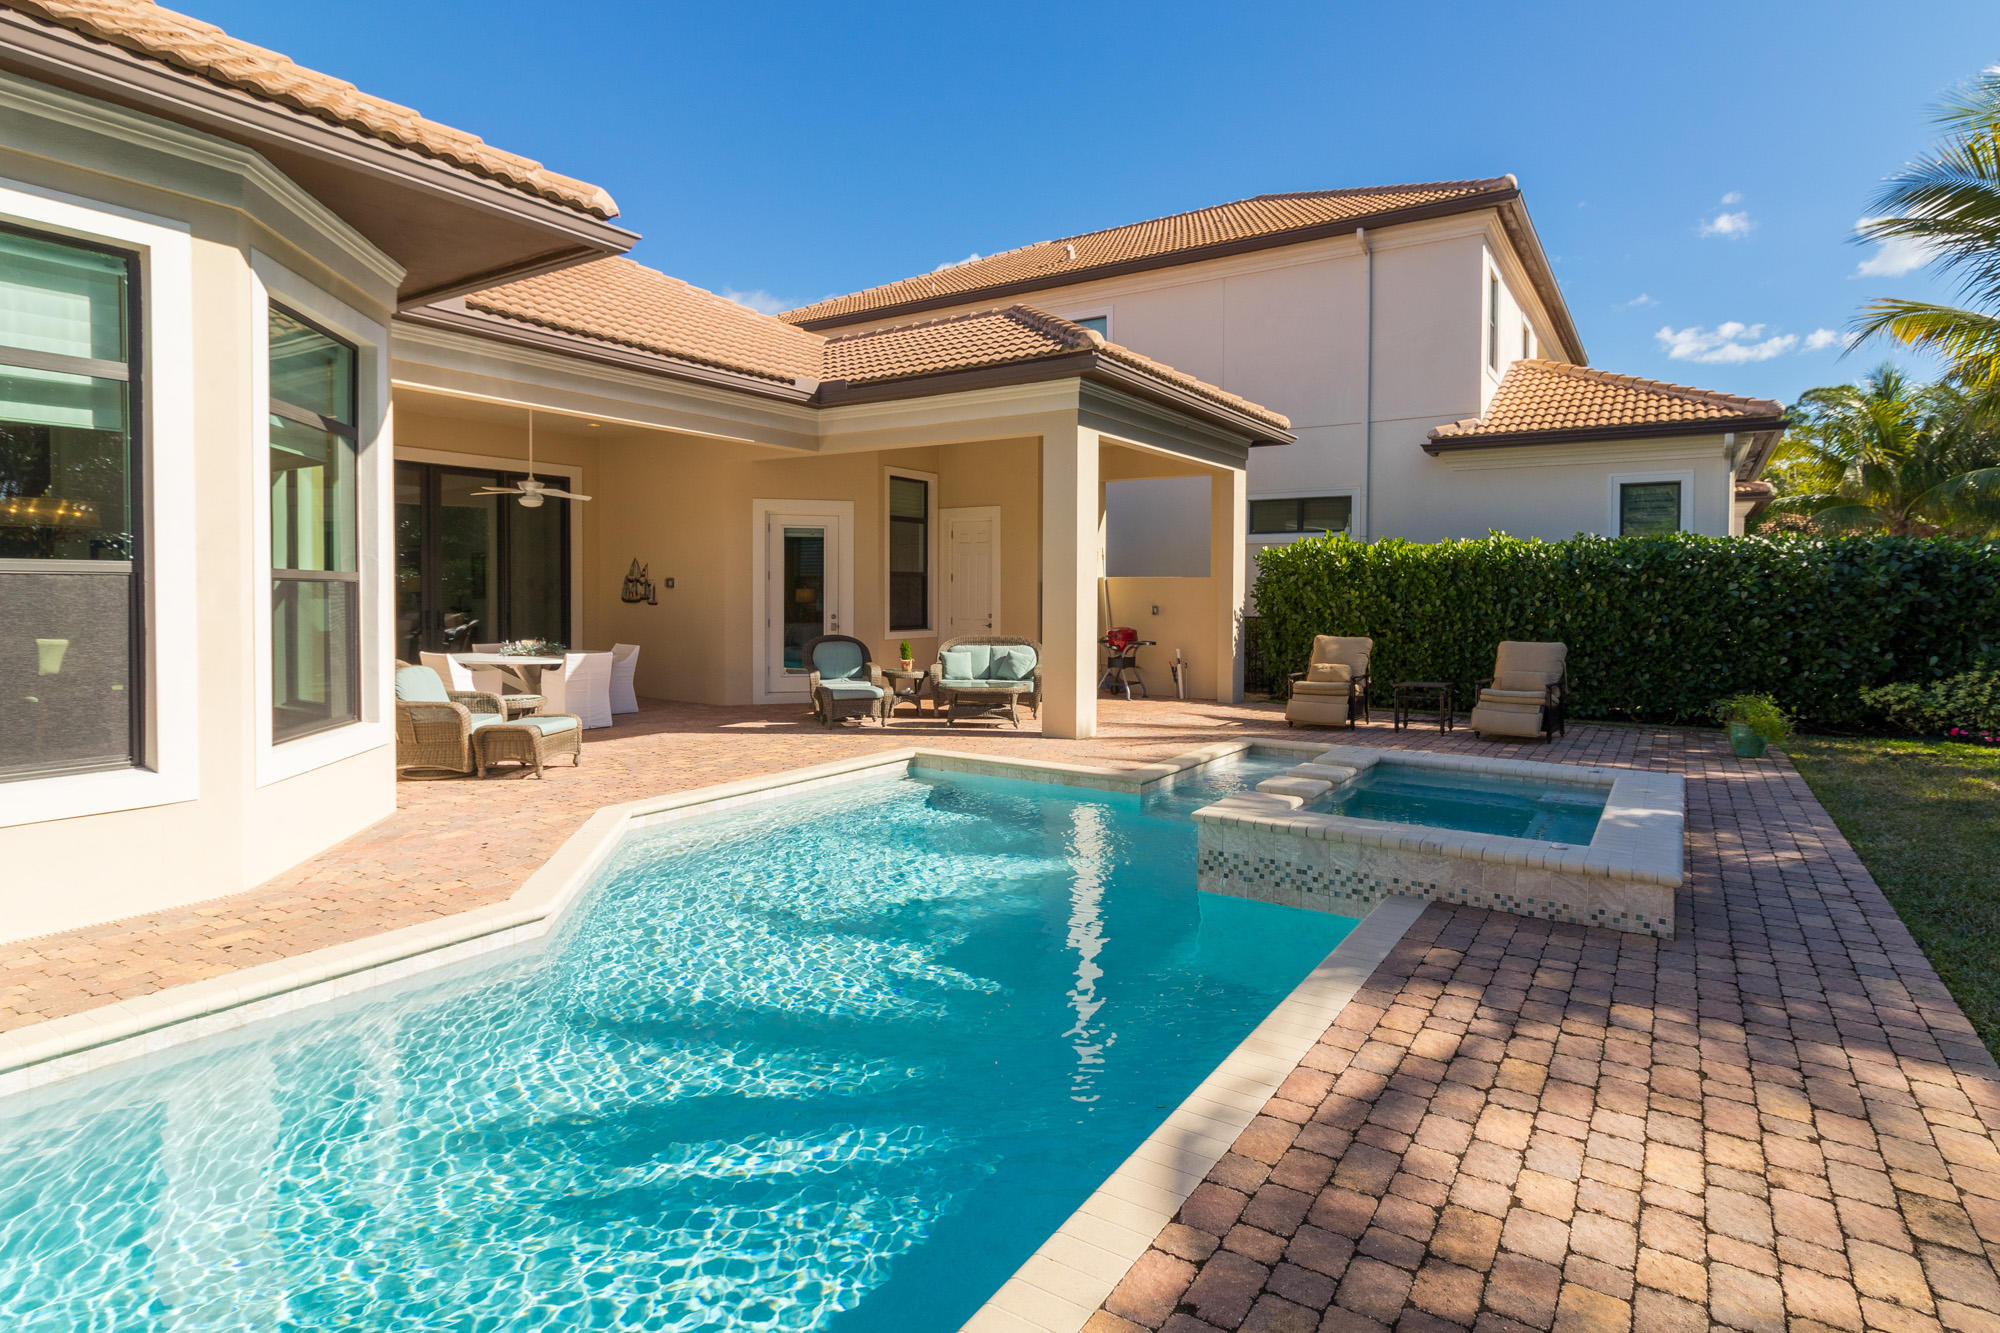 GARDENIA ISLES HOMES FOR SALE